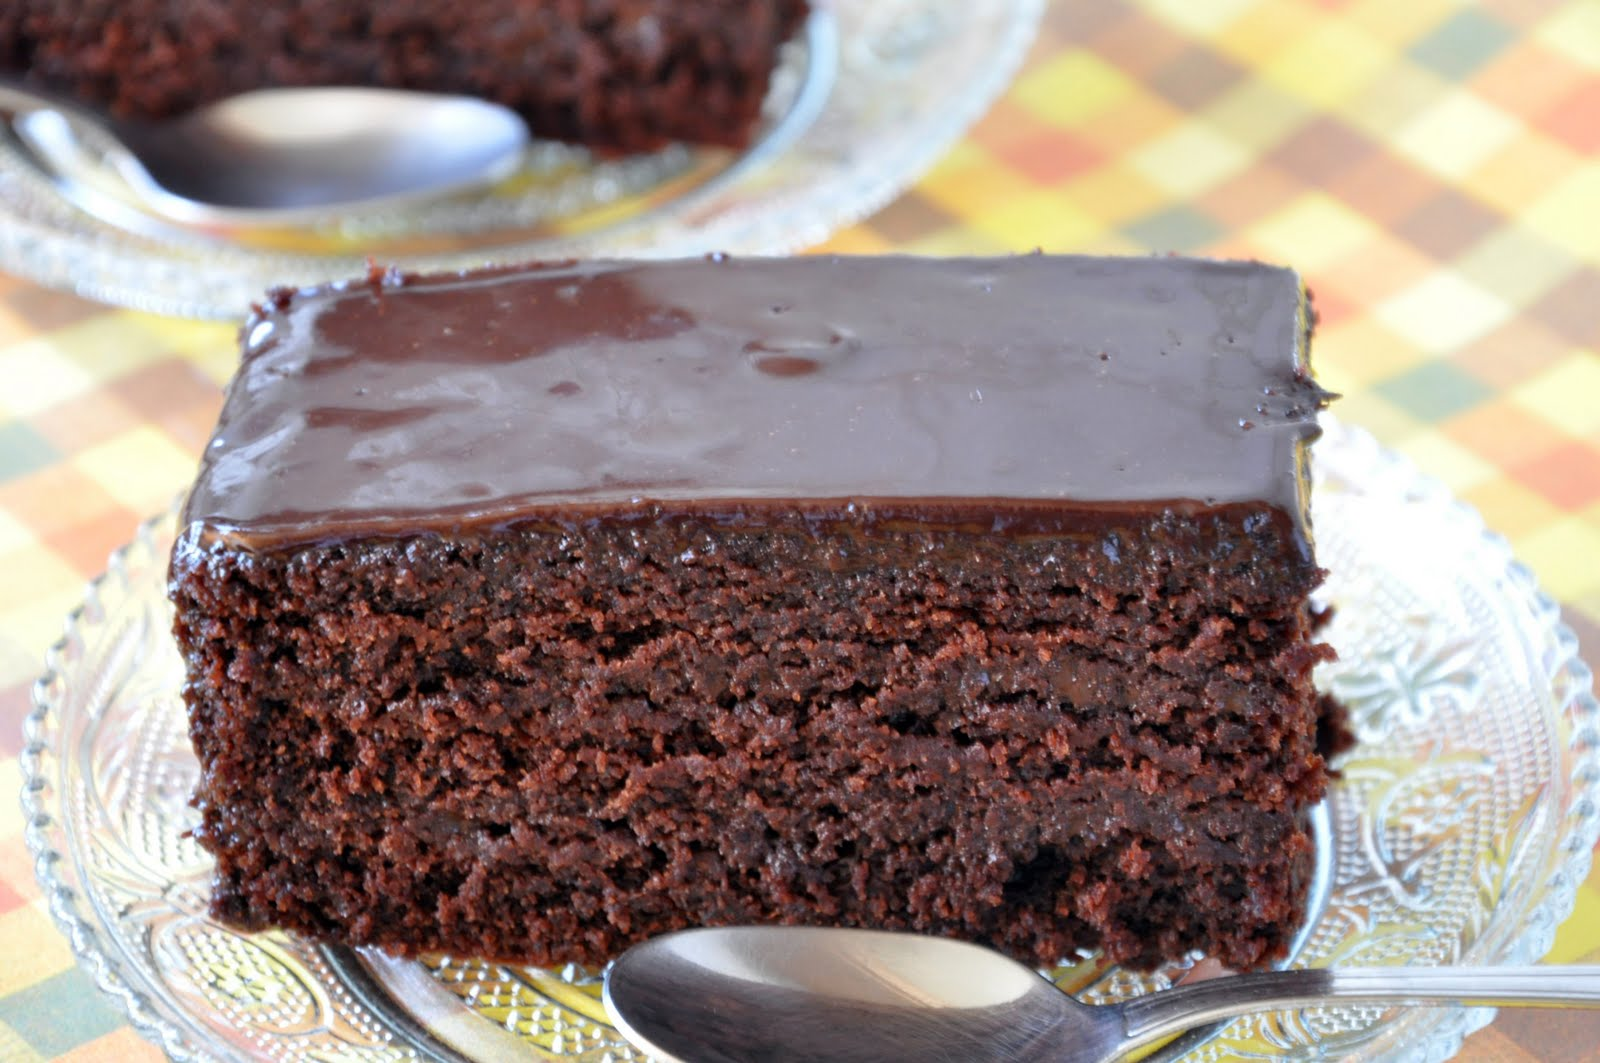 Served with love: Chocolate Truffle Cake